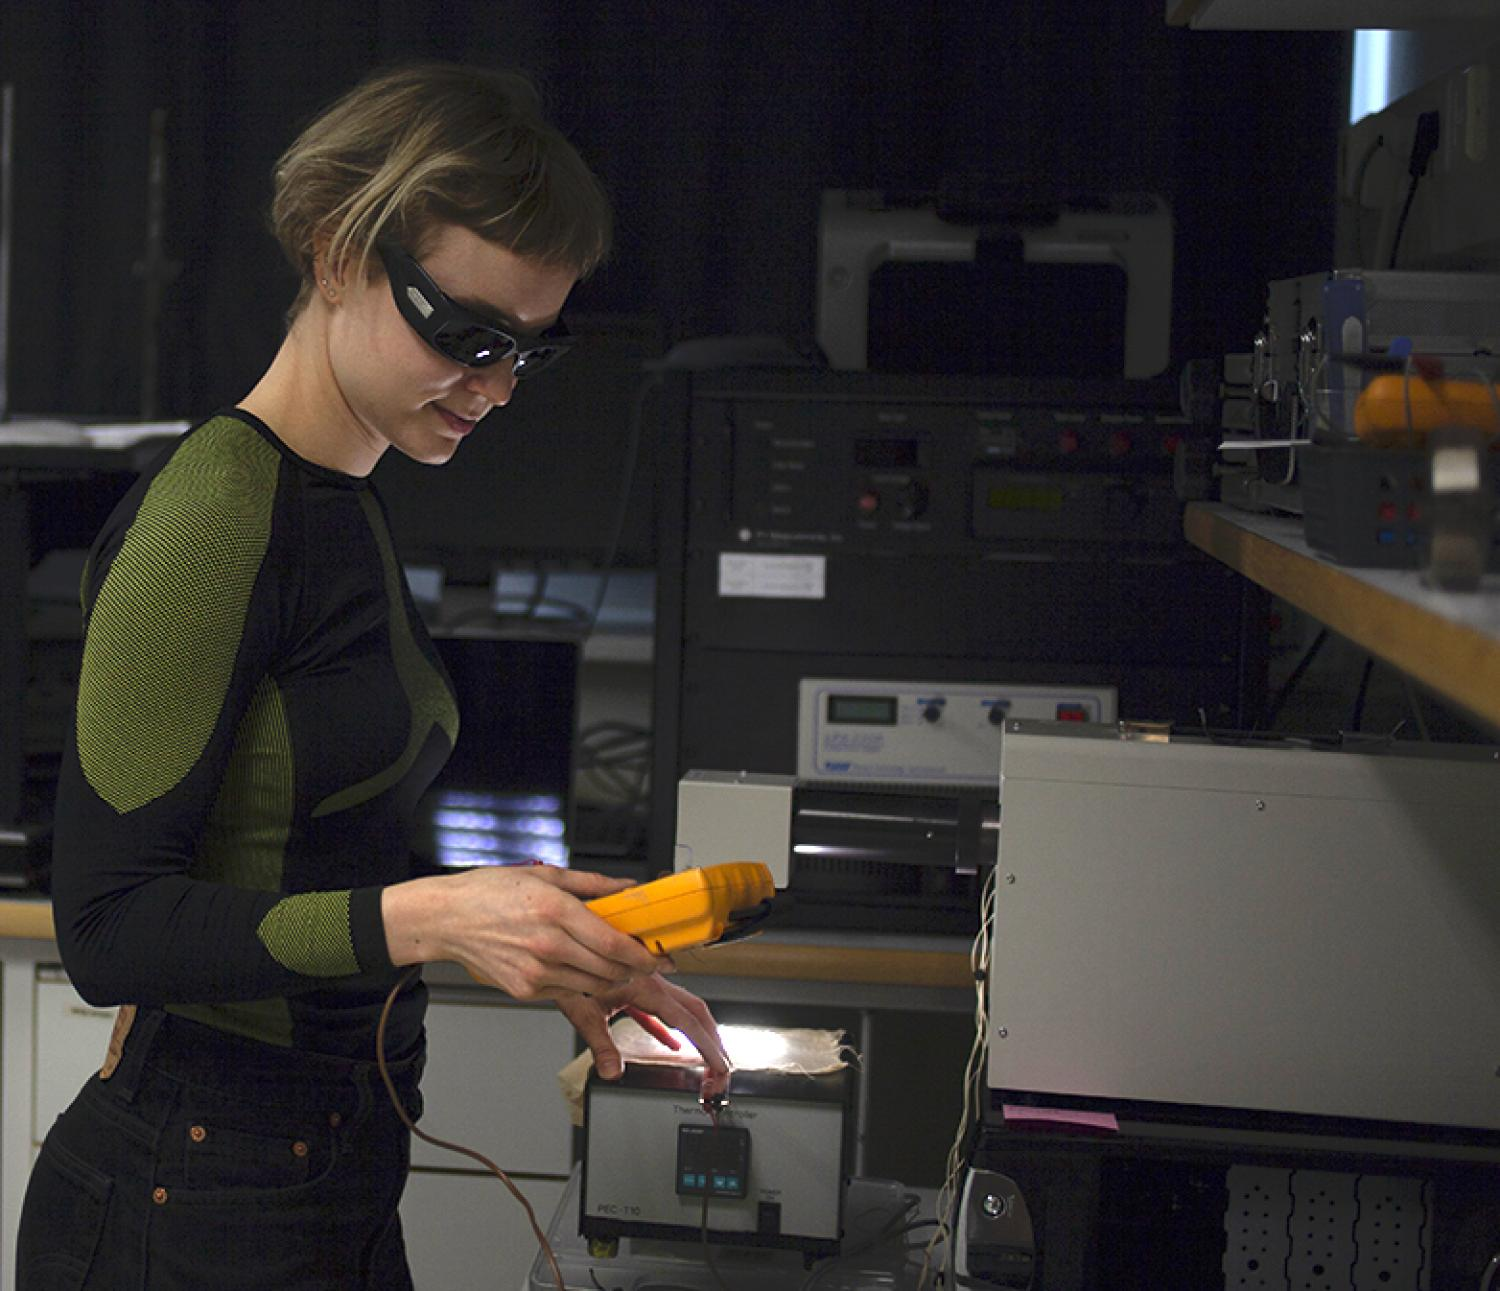 Sandra Wirtanen at Aalto University Department of Applied Physics laboratory measuring performance of textile prototypes.